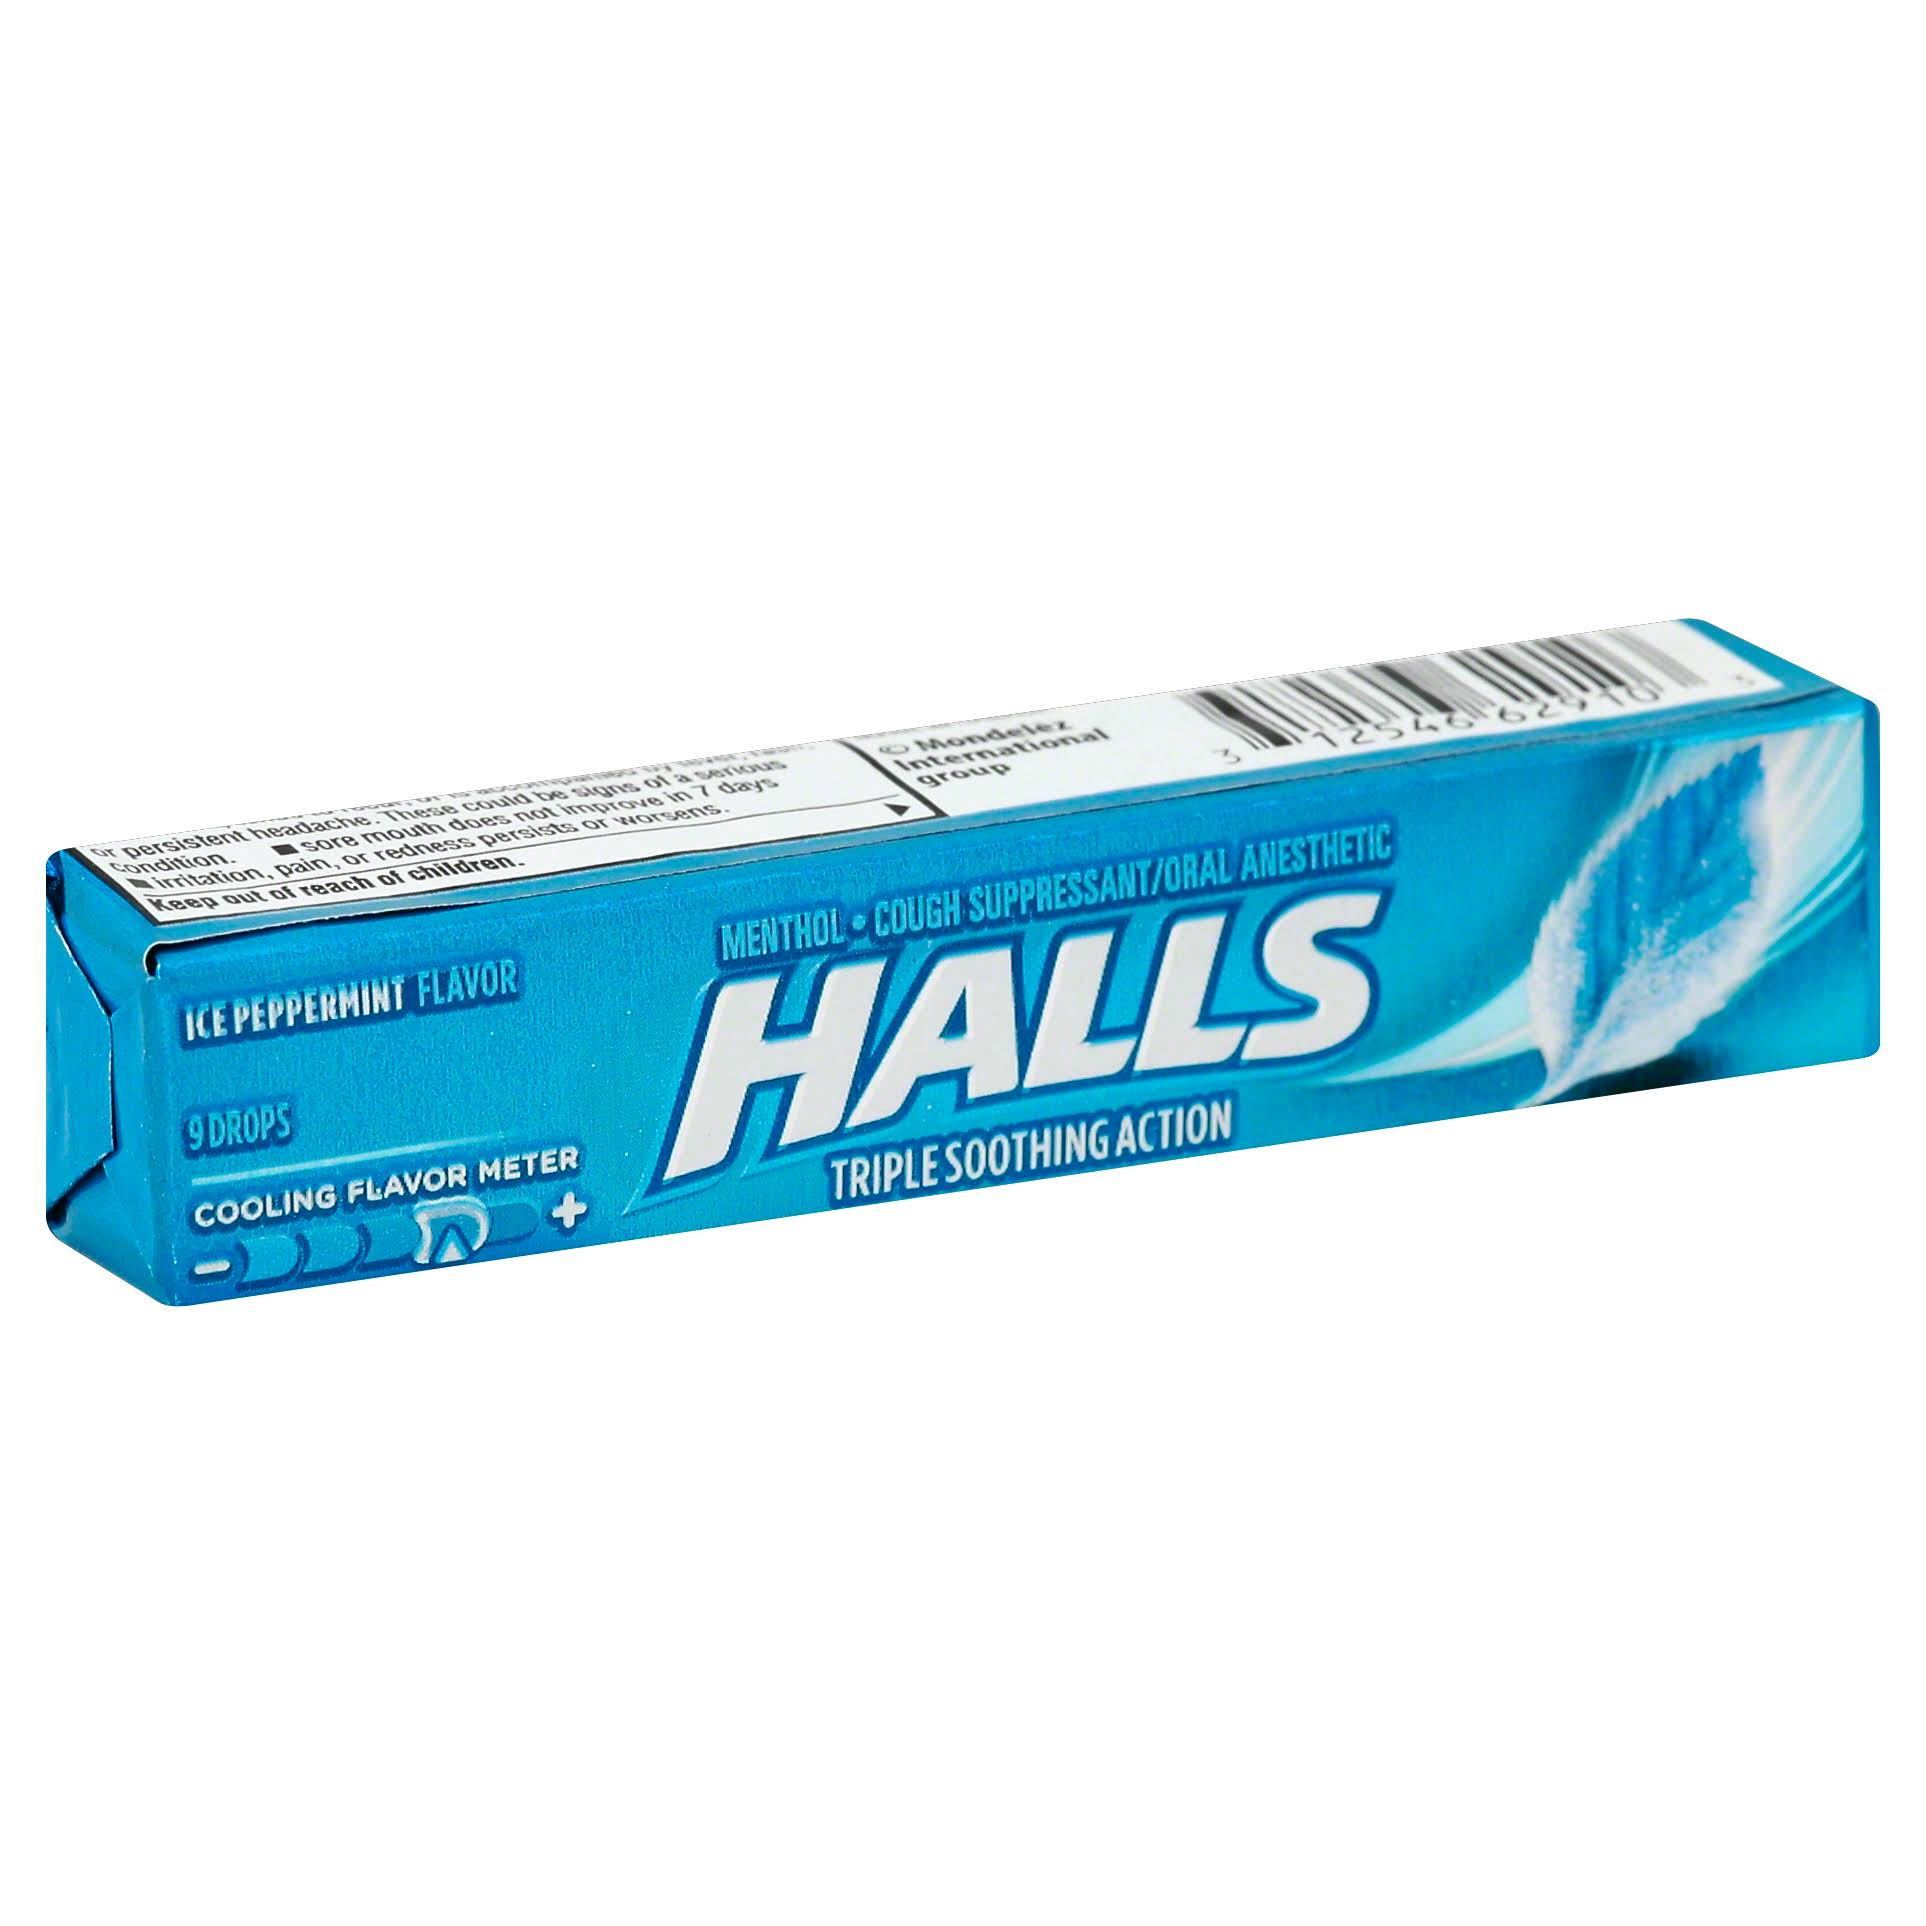 Halls Mentho-Lyptus Cough Suppressant Drops - Ice Peppermint, 9 Drops